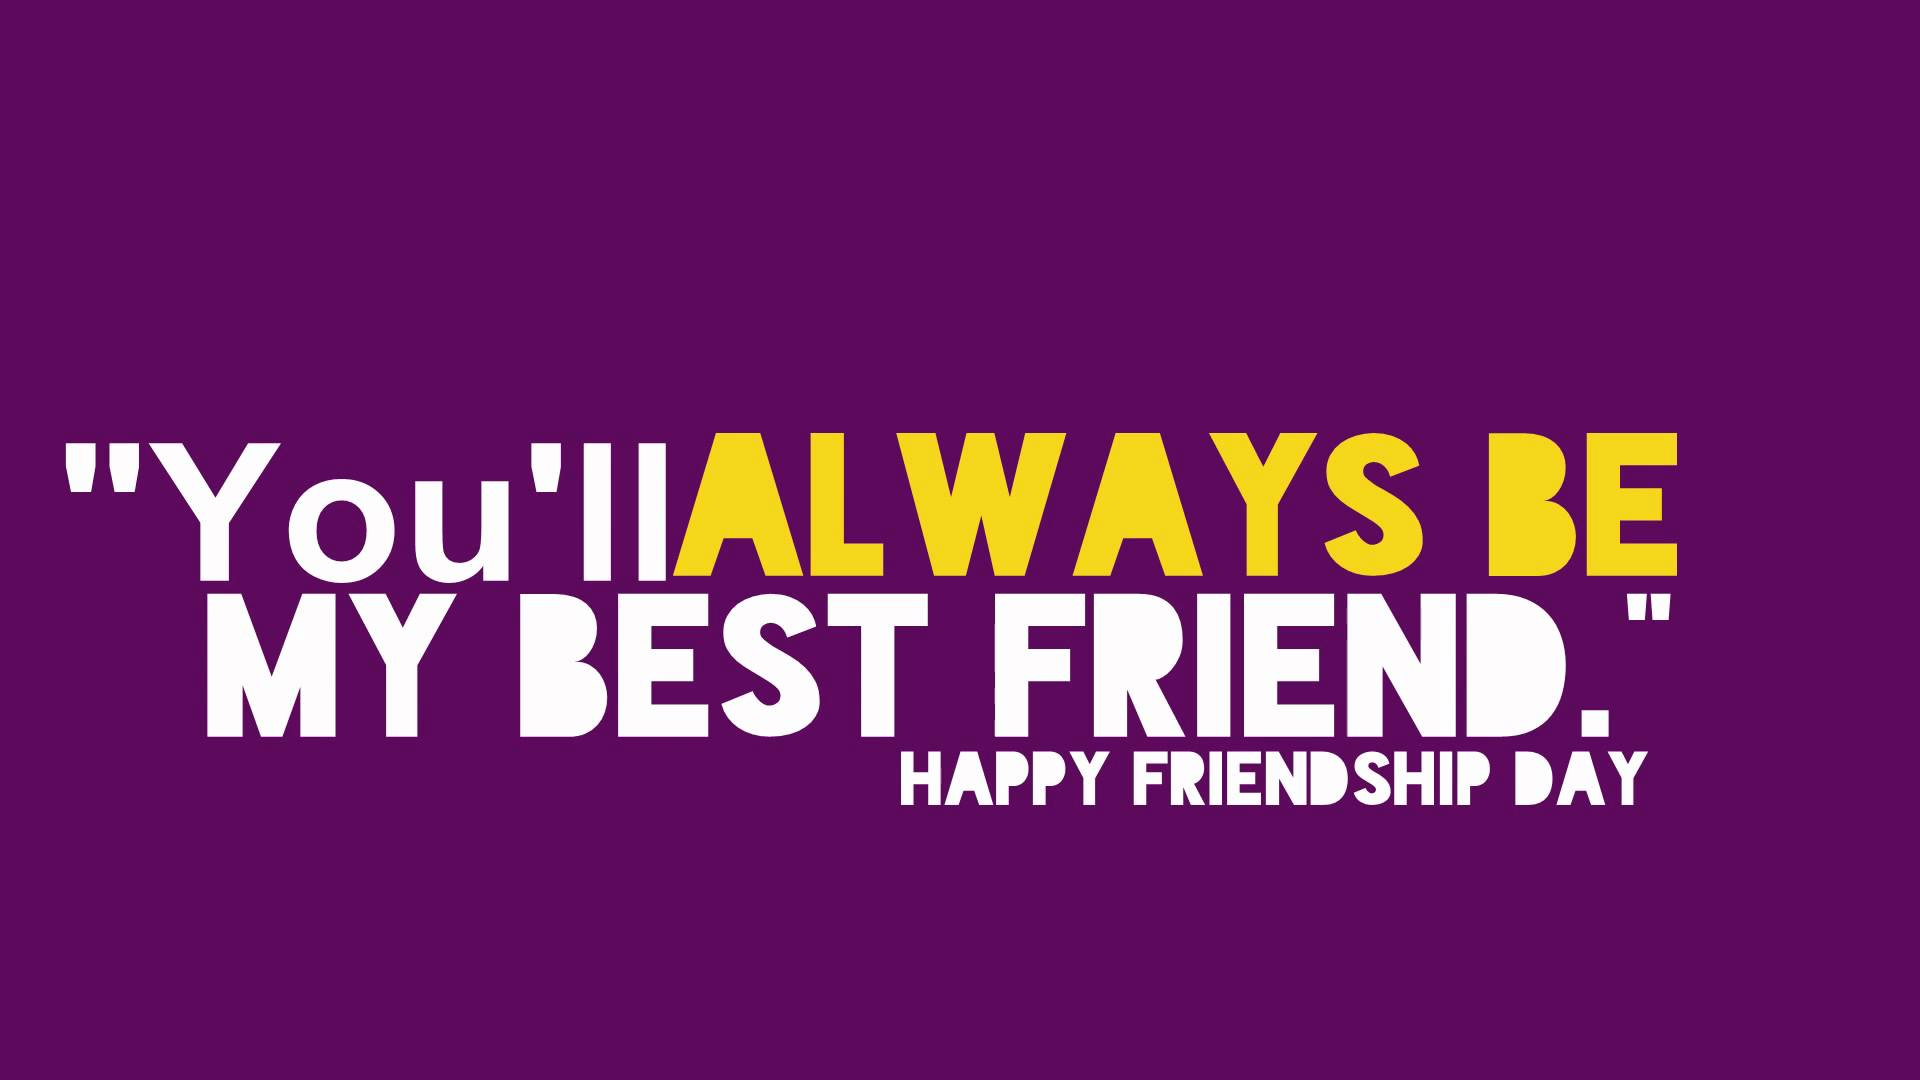 friendship day hd images wallpaper pics photos free download - atulhost